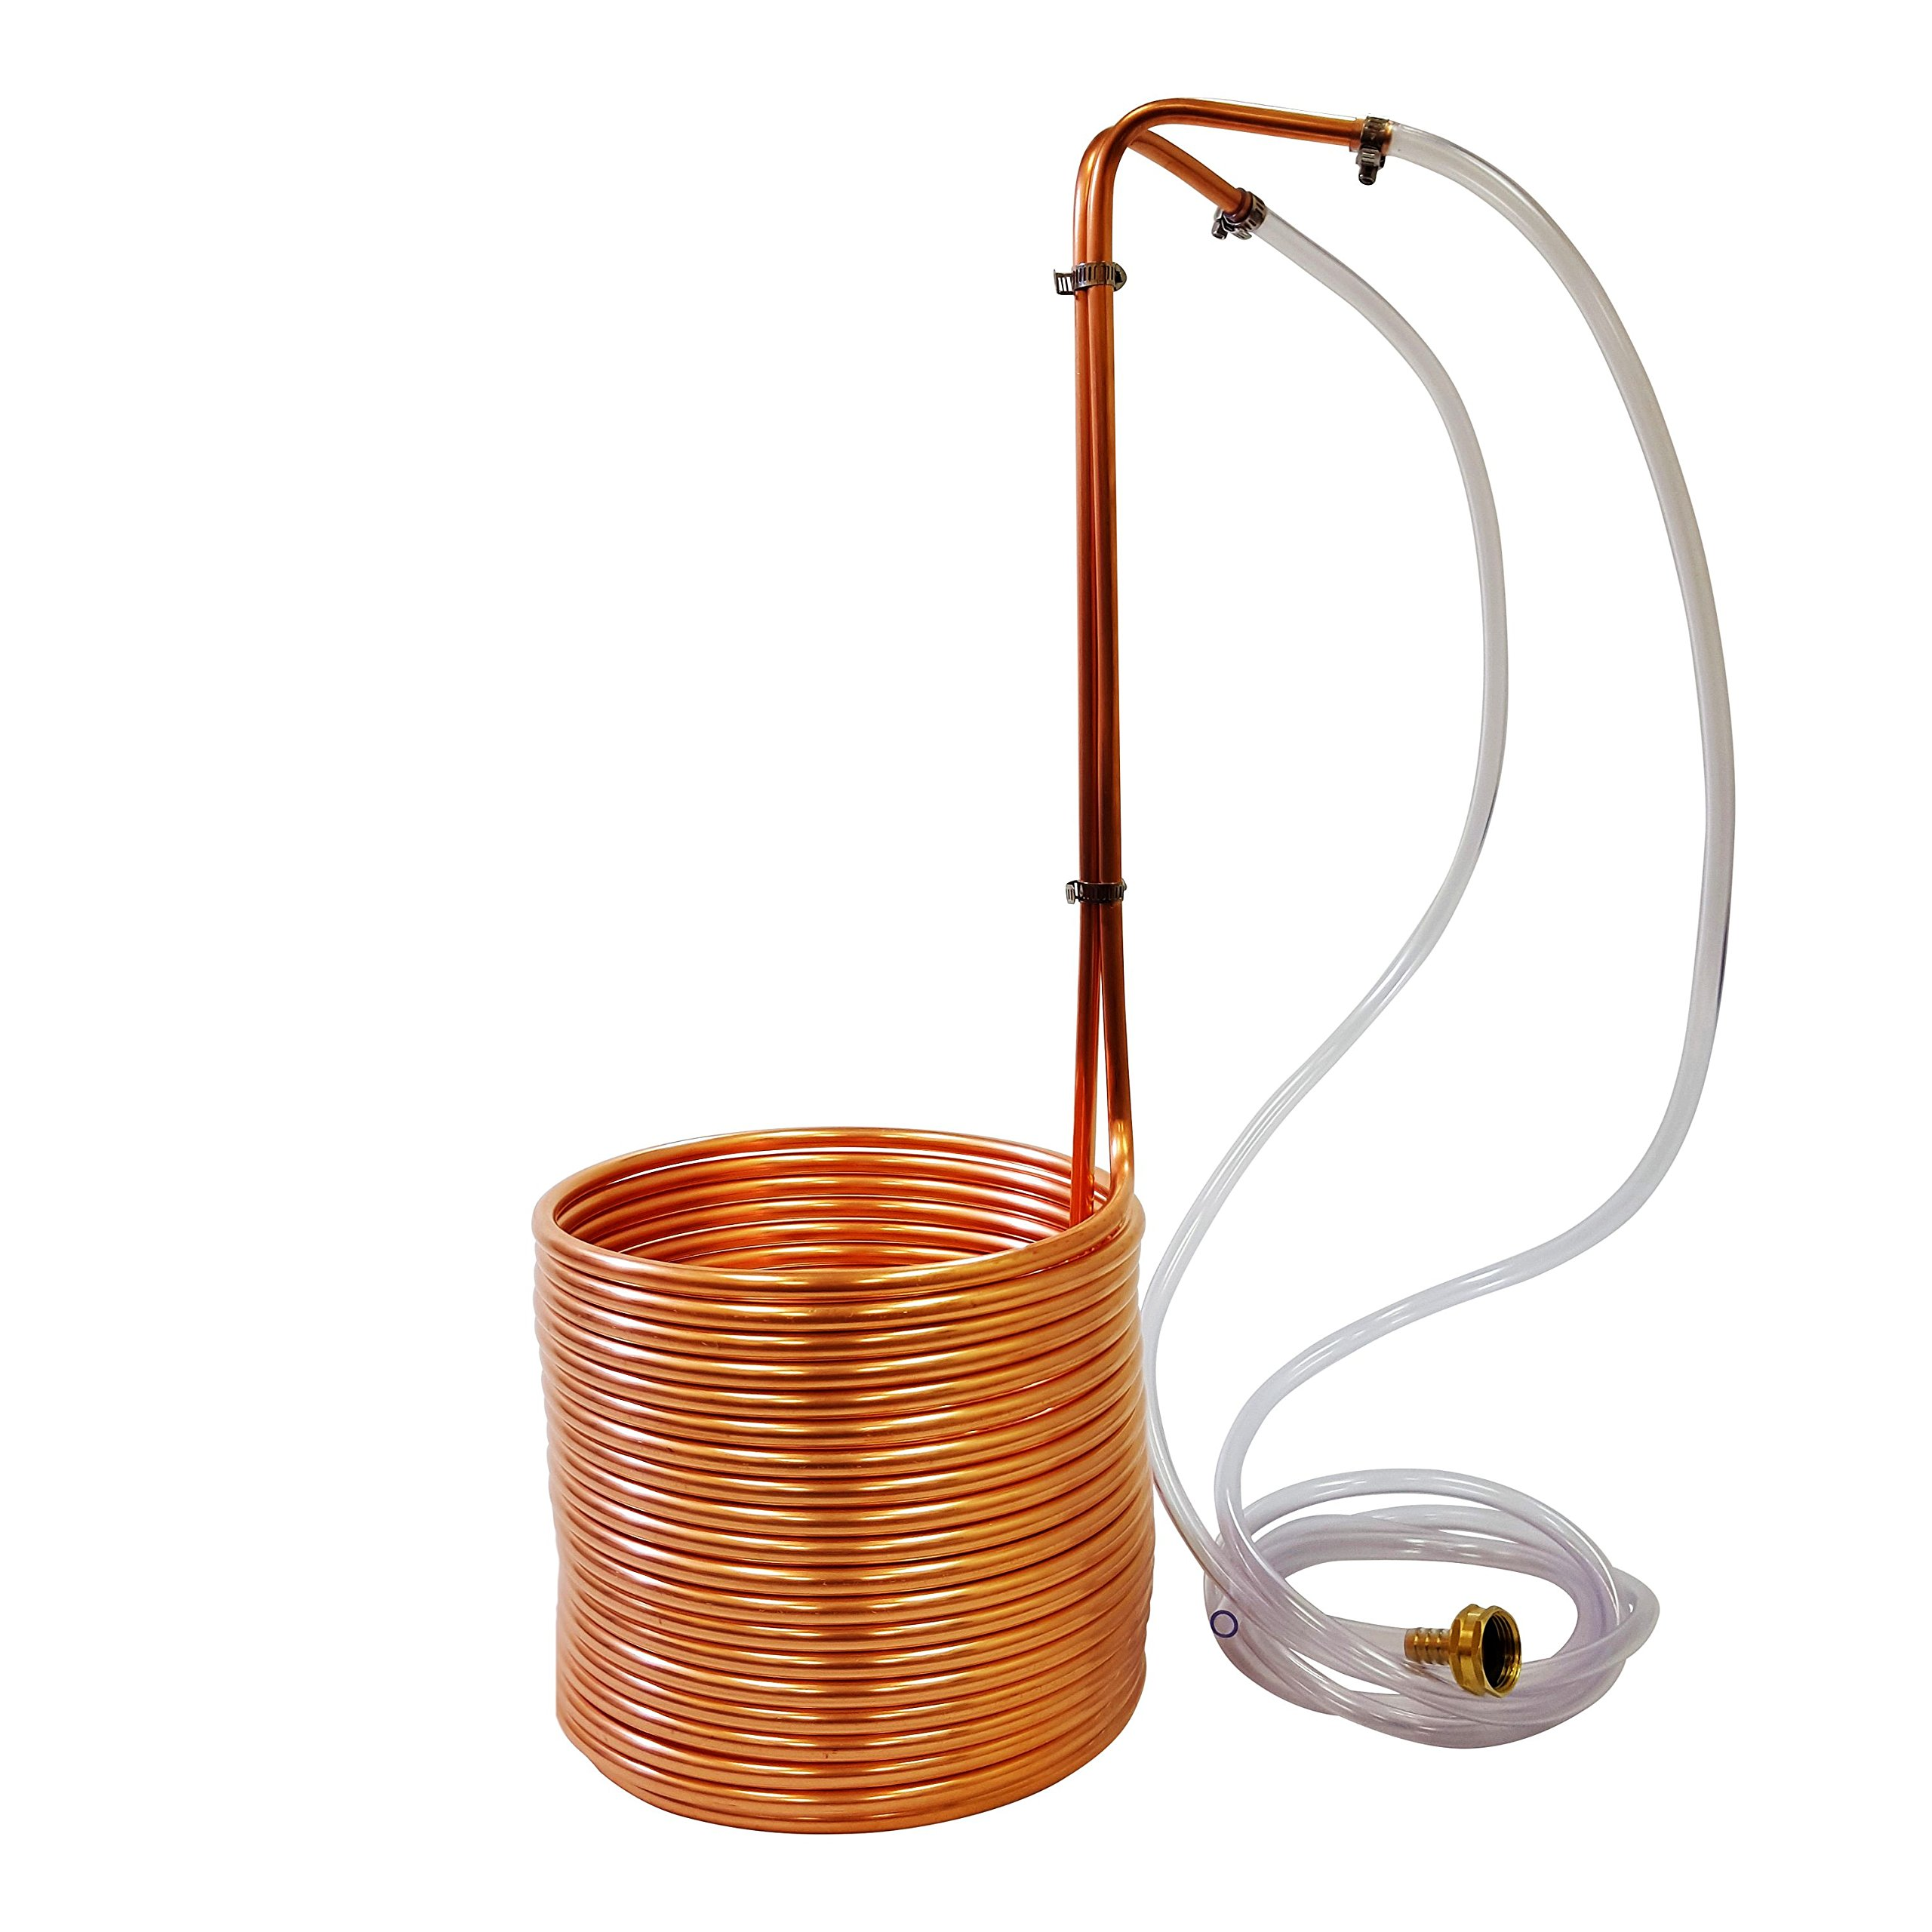 NY Brew Supply W3850-CV Super Efficient 3/8 x 50' Copper Wort Chiller by NY Brew Supply